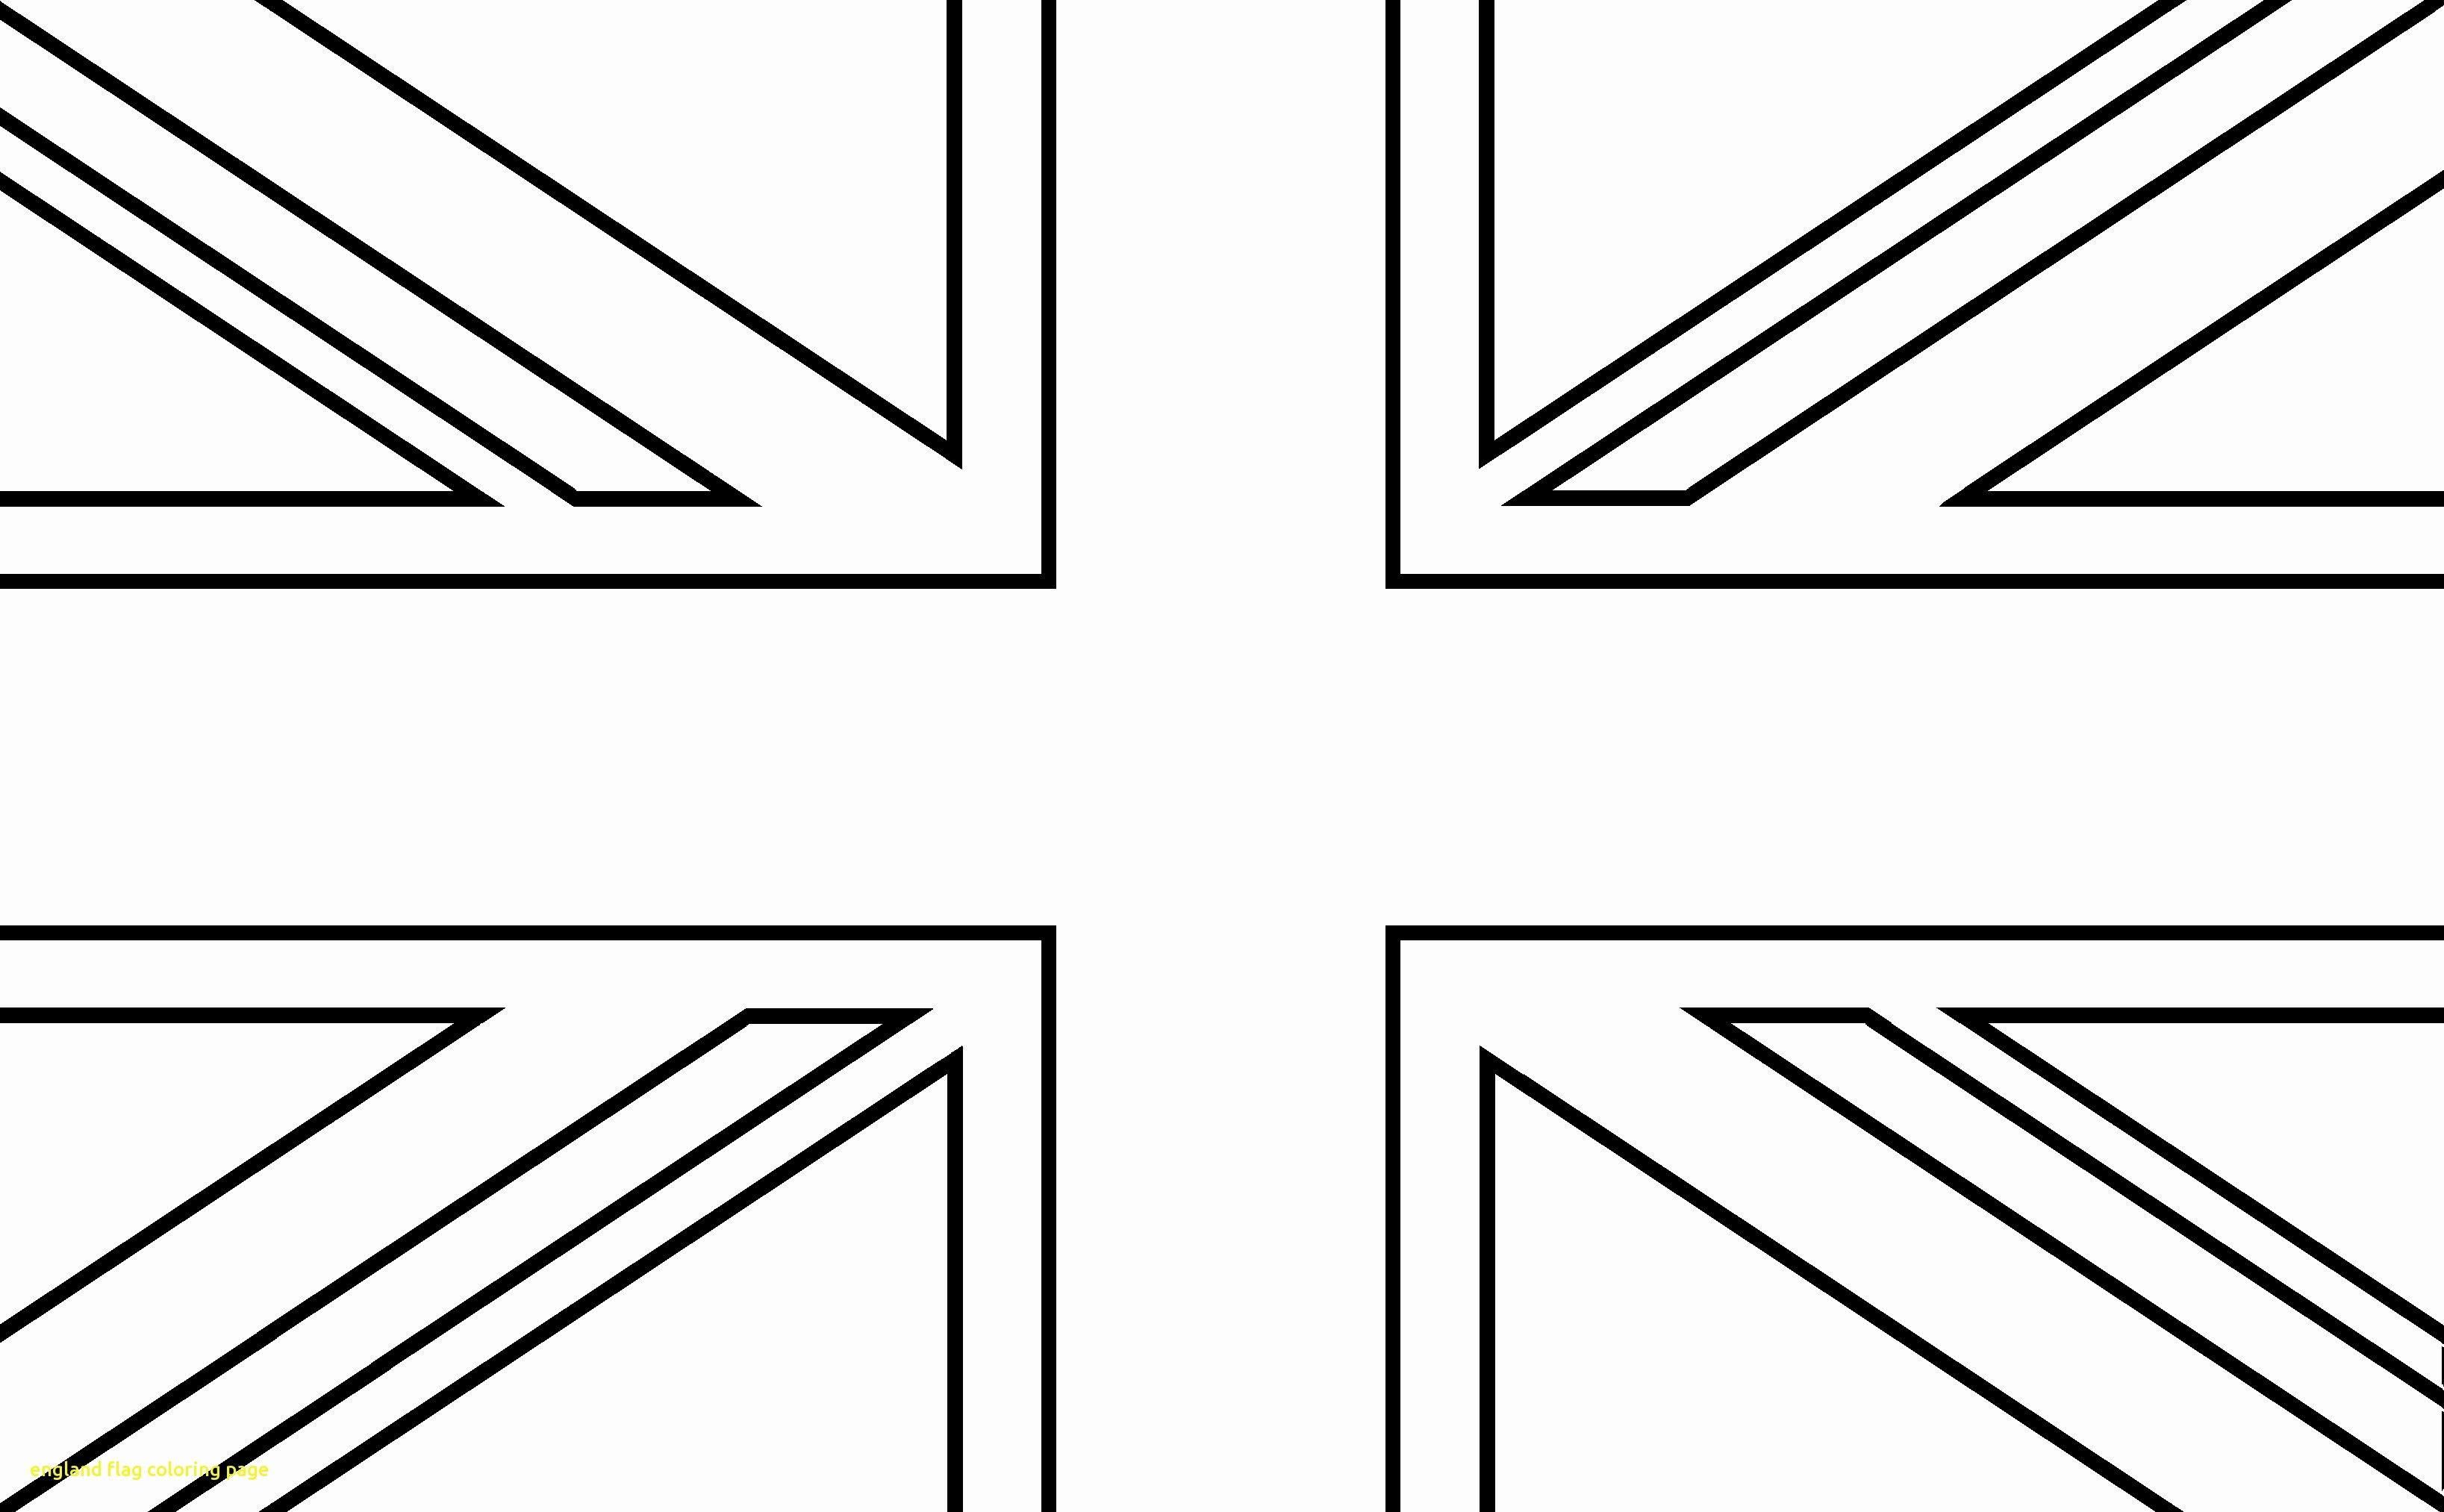 Live Com Sign In Page Best Of Fundamentals England Flag Outline Endorsed Coloring Page